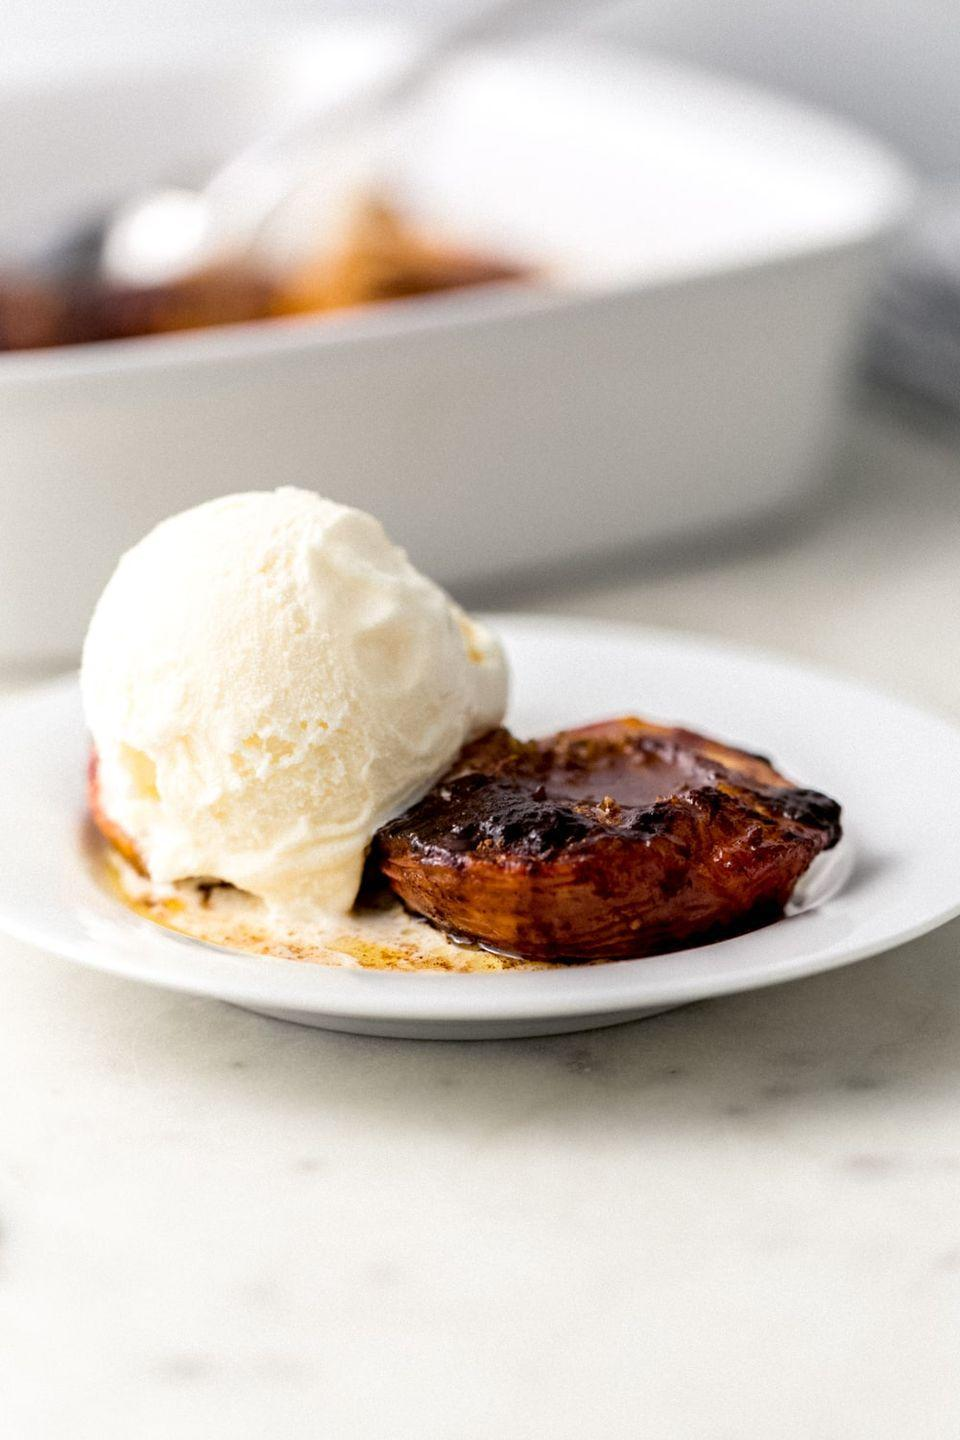 """<p>Brown sugar and peaches go so well together, and this dish is proof! Serve these peaches warm with a scoop of your favorite ice cream.</p><p><strong>Get the recipe at <a href=""""https://www.simplylakita.com/brown-sugar-baked-peaches/"""" rel=""""nofollow noopener"""" target=""""_blank"""" data-ylk=""""slk:Simply LaKita"""" class=""""link rapid-noclick-resp"""">Simply LaKita</a>.</strong></p><p><a class=""""link rapid-noclick-resp"""" href=""""https://go.redirectingat.com?id=74968X1596630&url=https%3A%2F%2Fwww.walmart.com%2Fsearch%2F%3Fquery%3Dpioneer%2Bwoman%2Bserving%2Bplates&sref=https%3A%2F%2Fwww.thepioneerwoman.com%2Ffood-cooking%2Frecipes%2Fg36382592%2Fpeach-desserts%2F"""" rel=""""nofollow noopener"""" target=""""_blank"""" data-ylk=""""slk:SHOP SERVING PLATES"""">SHOP SERVING PLATES</a><strong><br></strong></p>"""